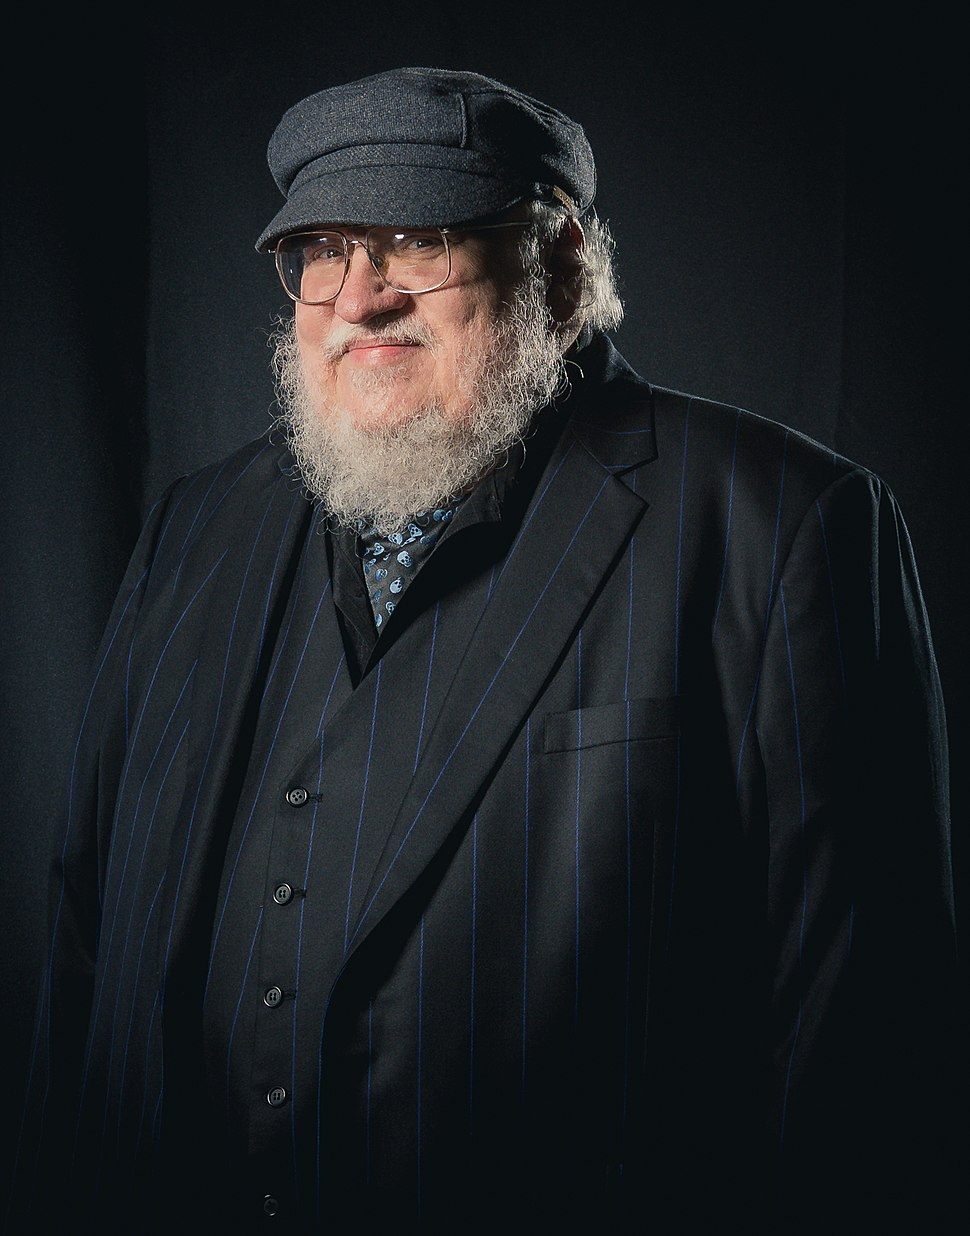 Portrait photoshoot at Worldcon 75, Helsinki, before the Hugo Awards – George R. R. Martin